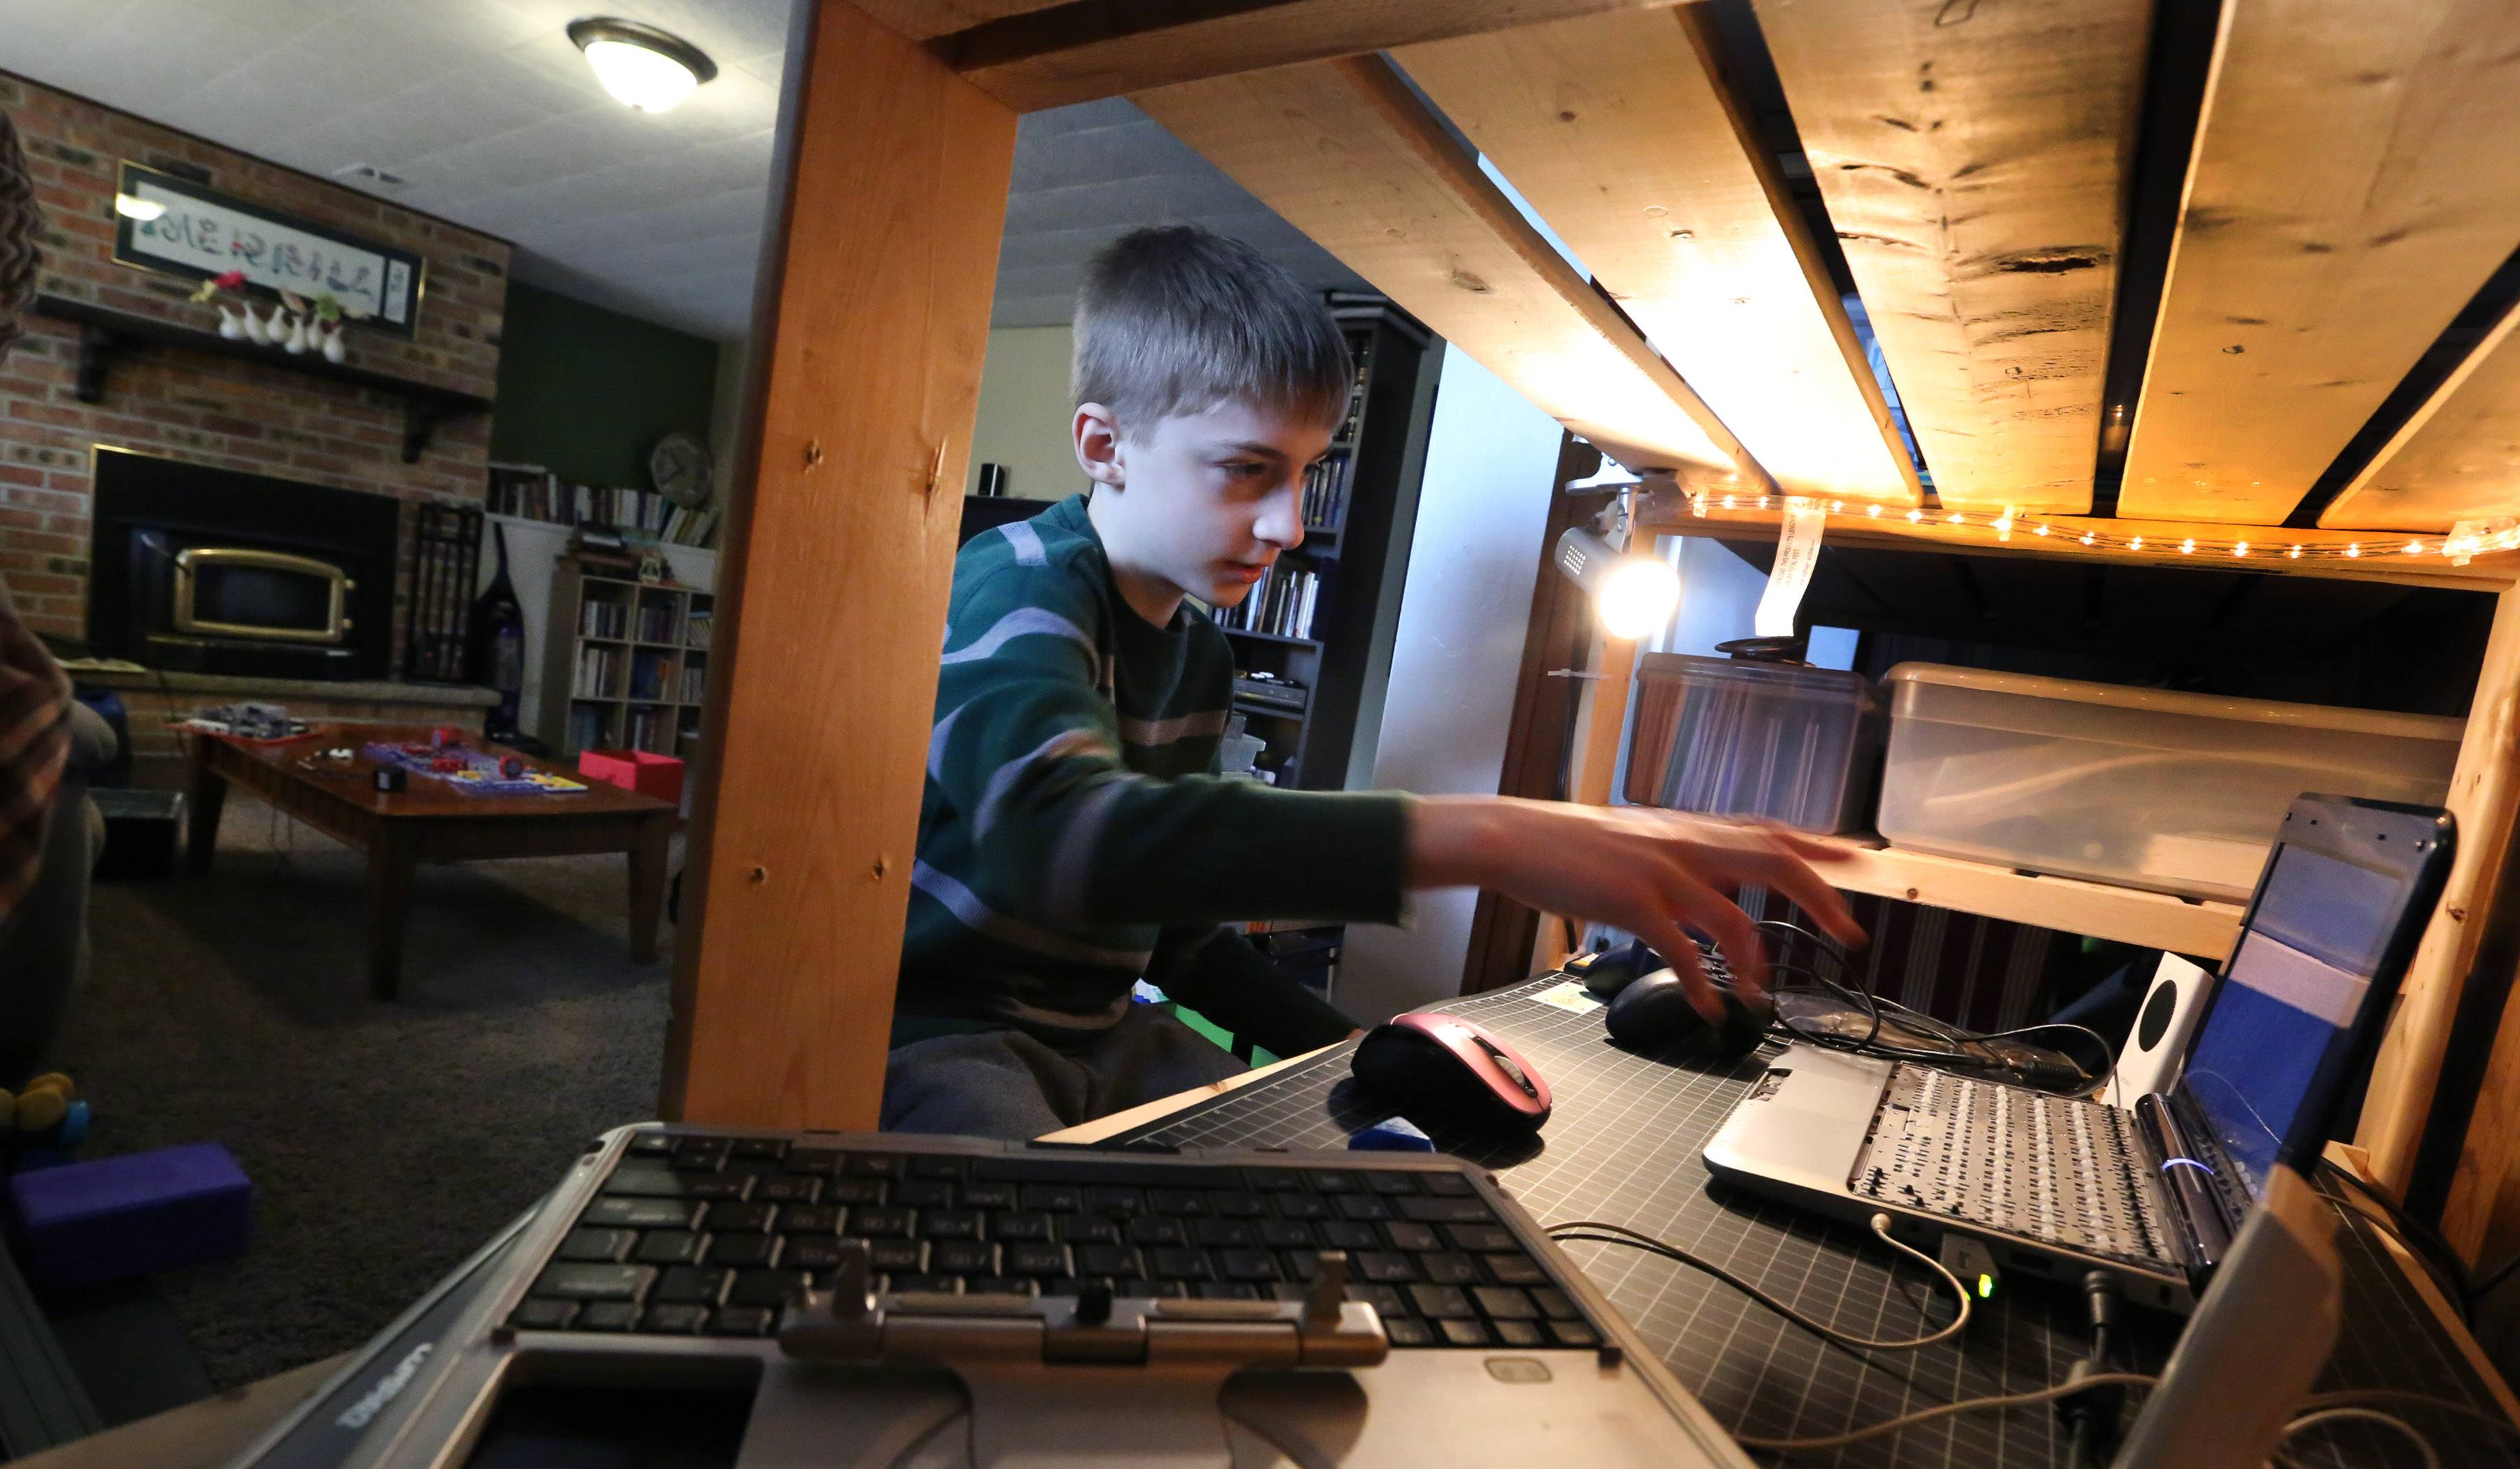 Andy Merrill opens a program on his laptop at his Makerspace workstation that his mom, Jenny, created for him to work on projects.